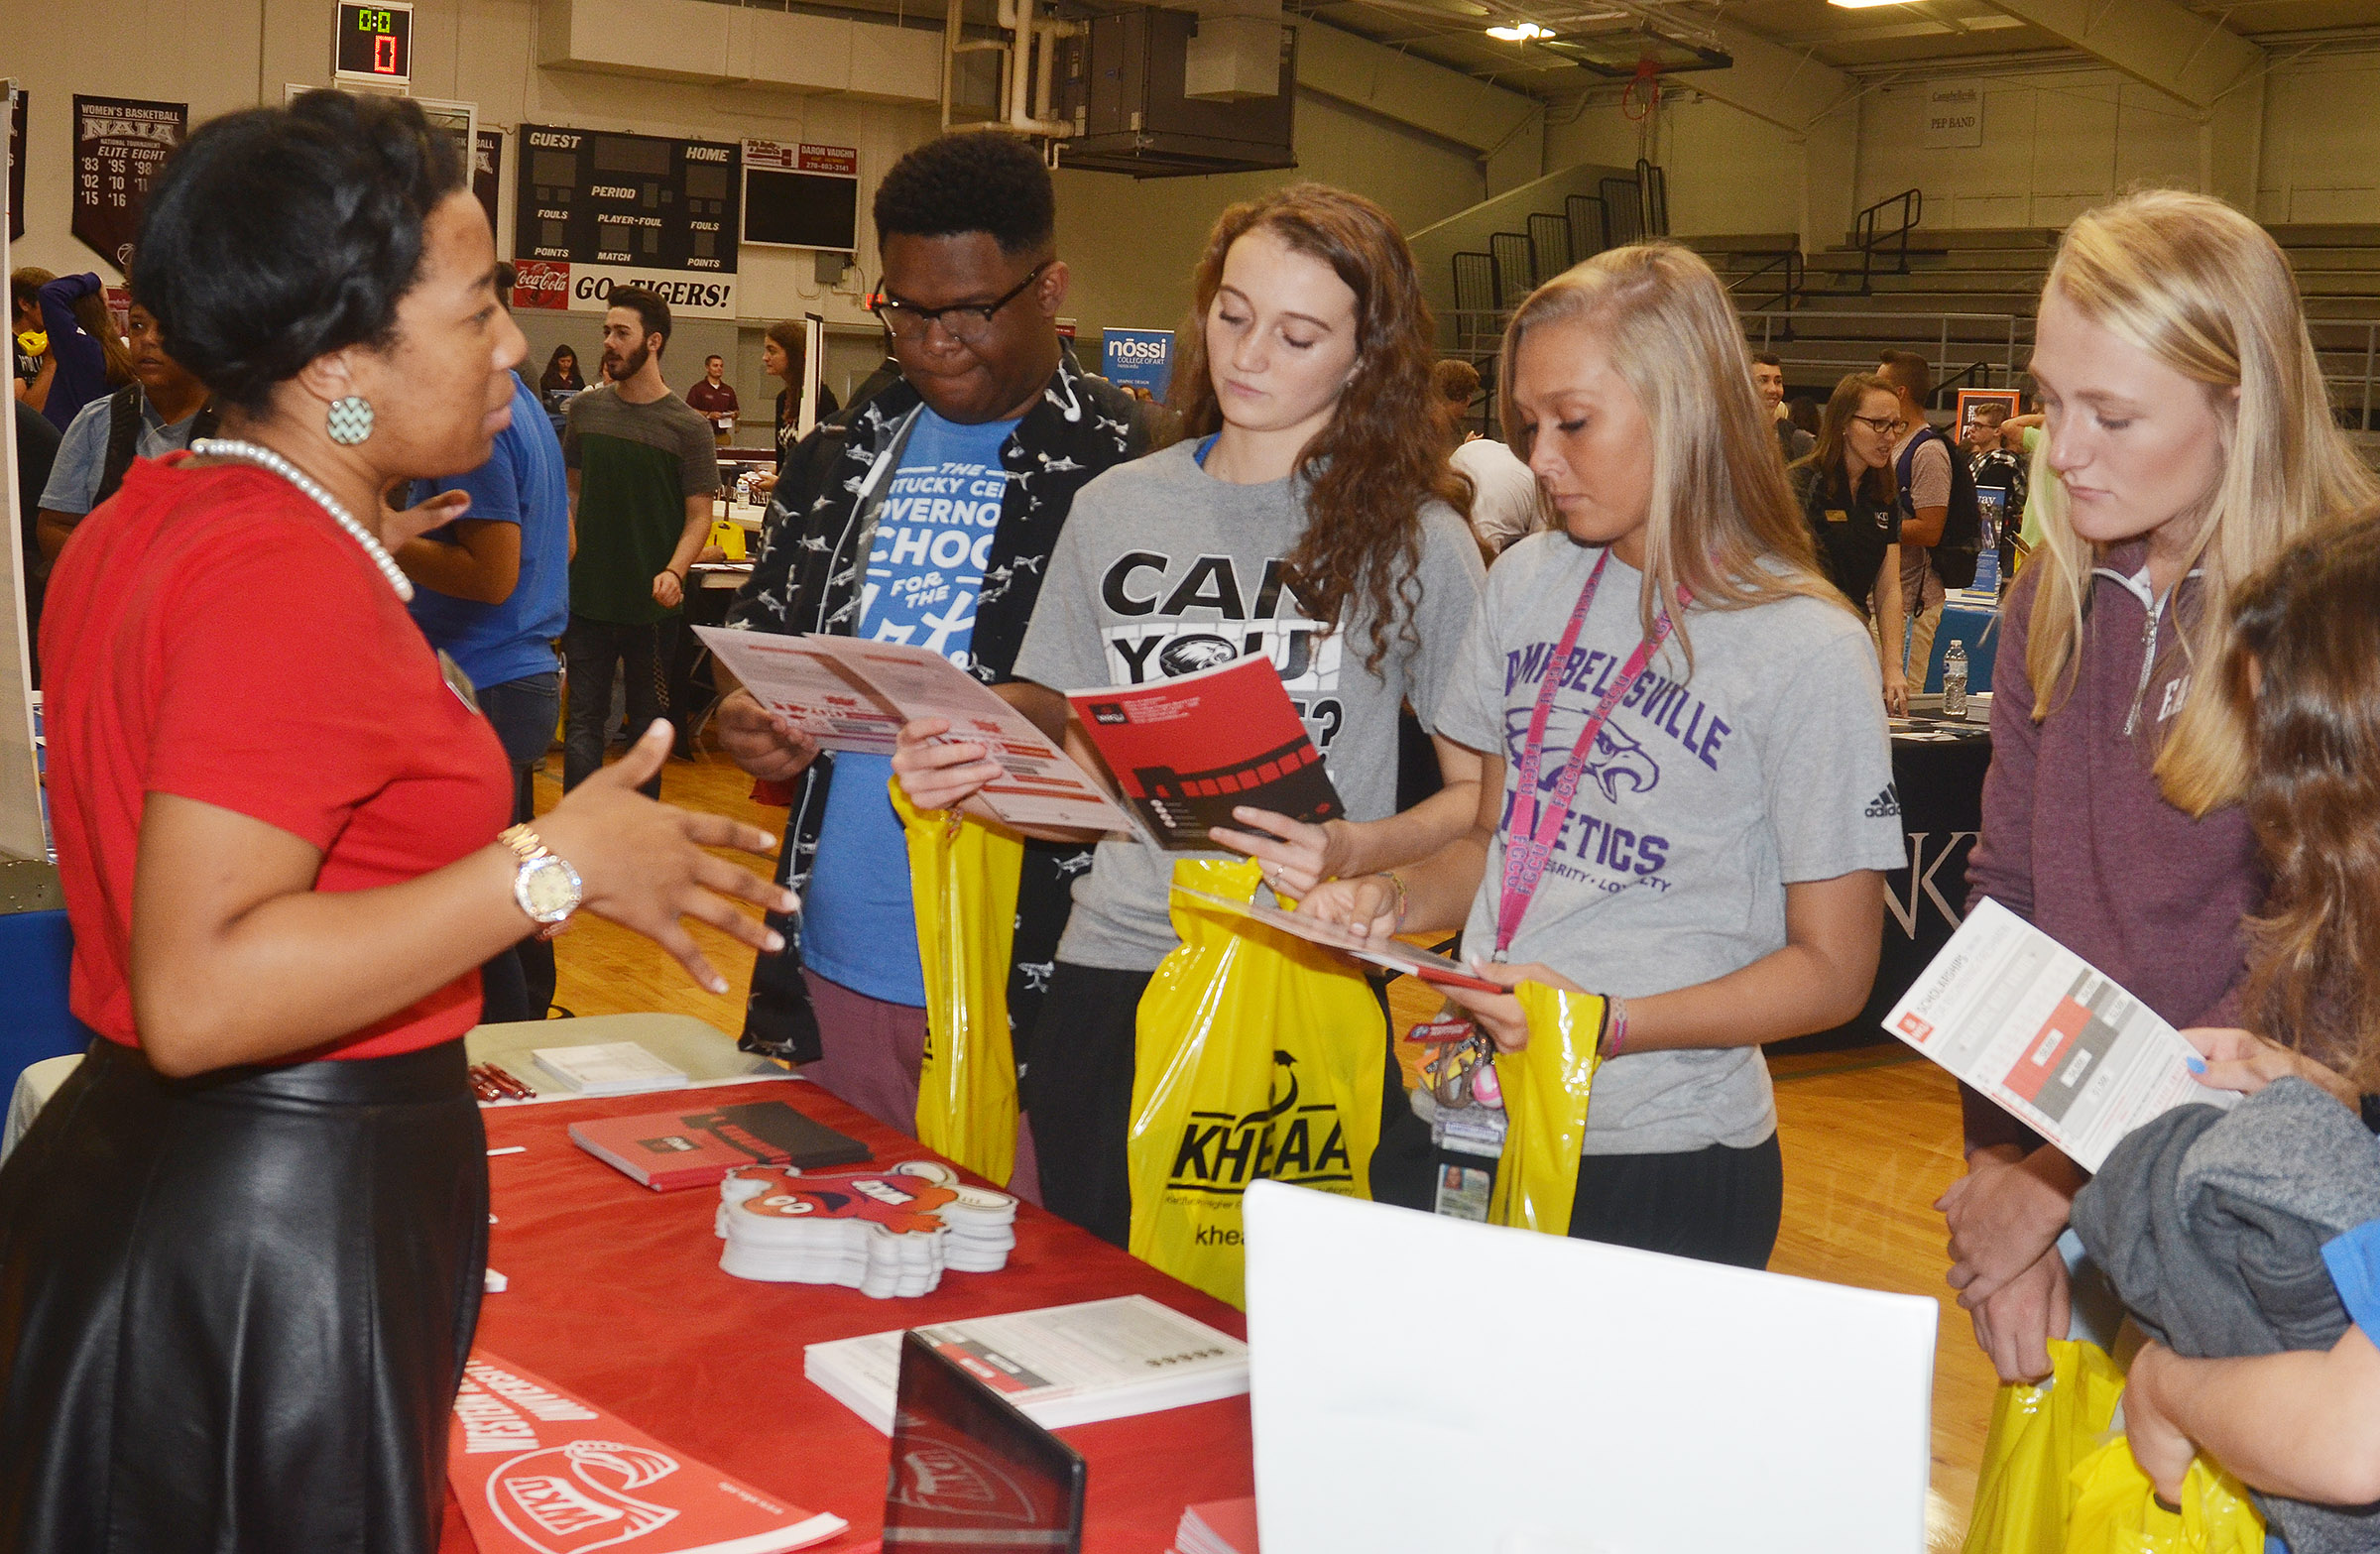 CHS juniors, from left, Jeremiah Jackson, Salena Ritchie, Tatem Wiseman and Abbie Dicken learn about Western Kentucky University.